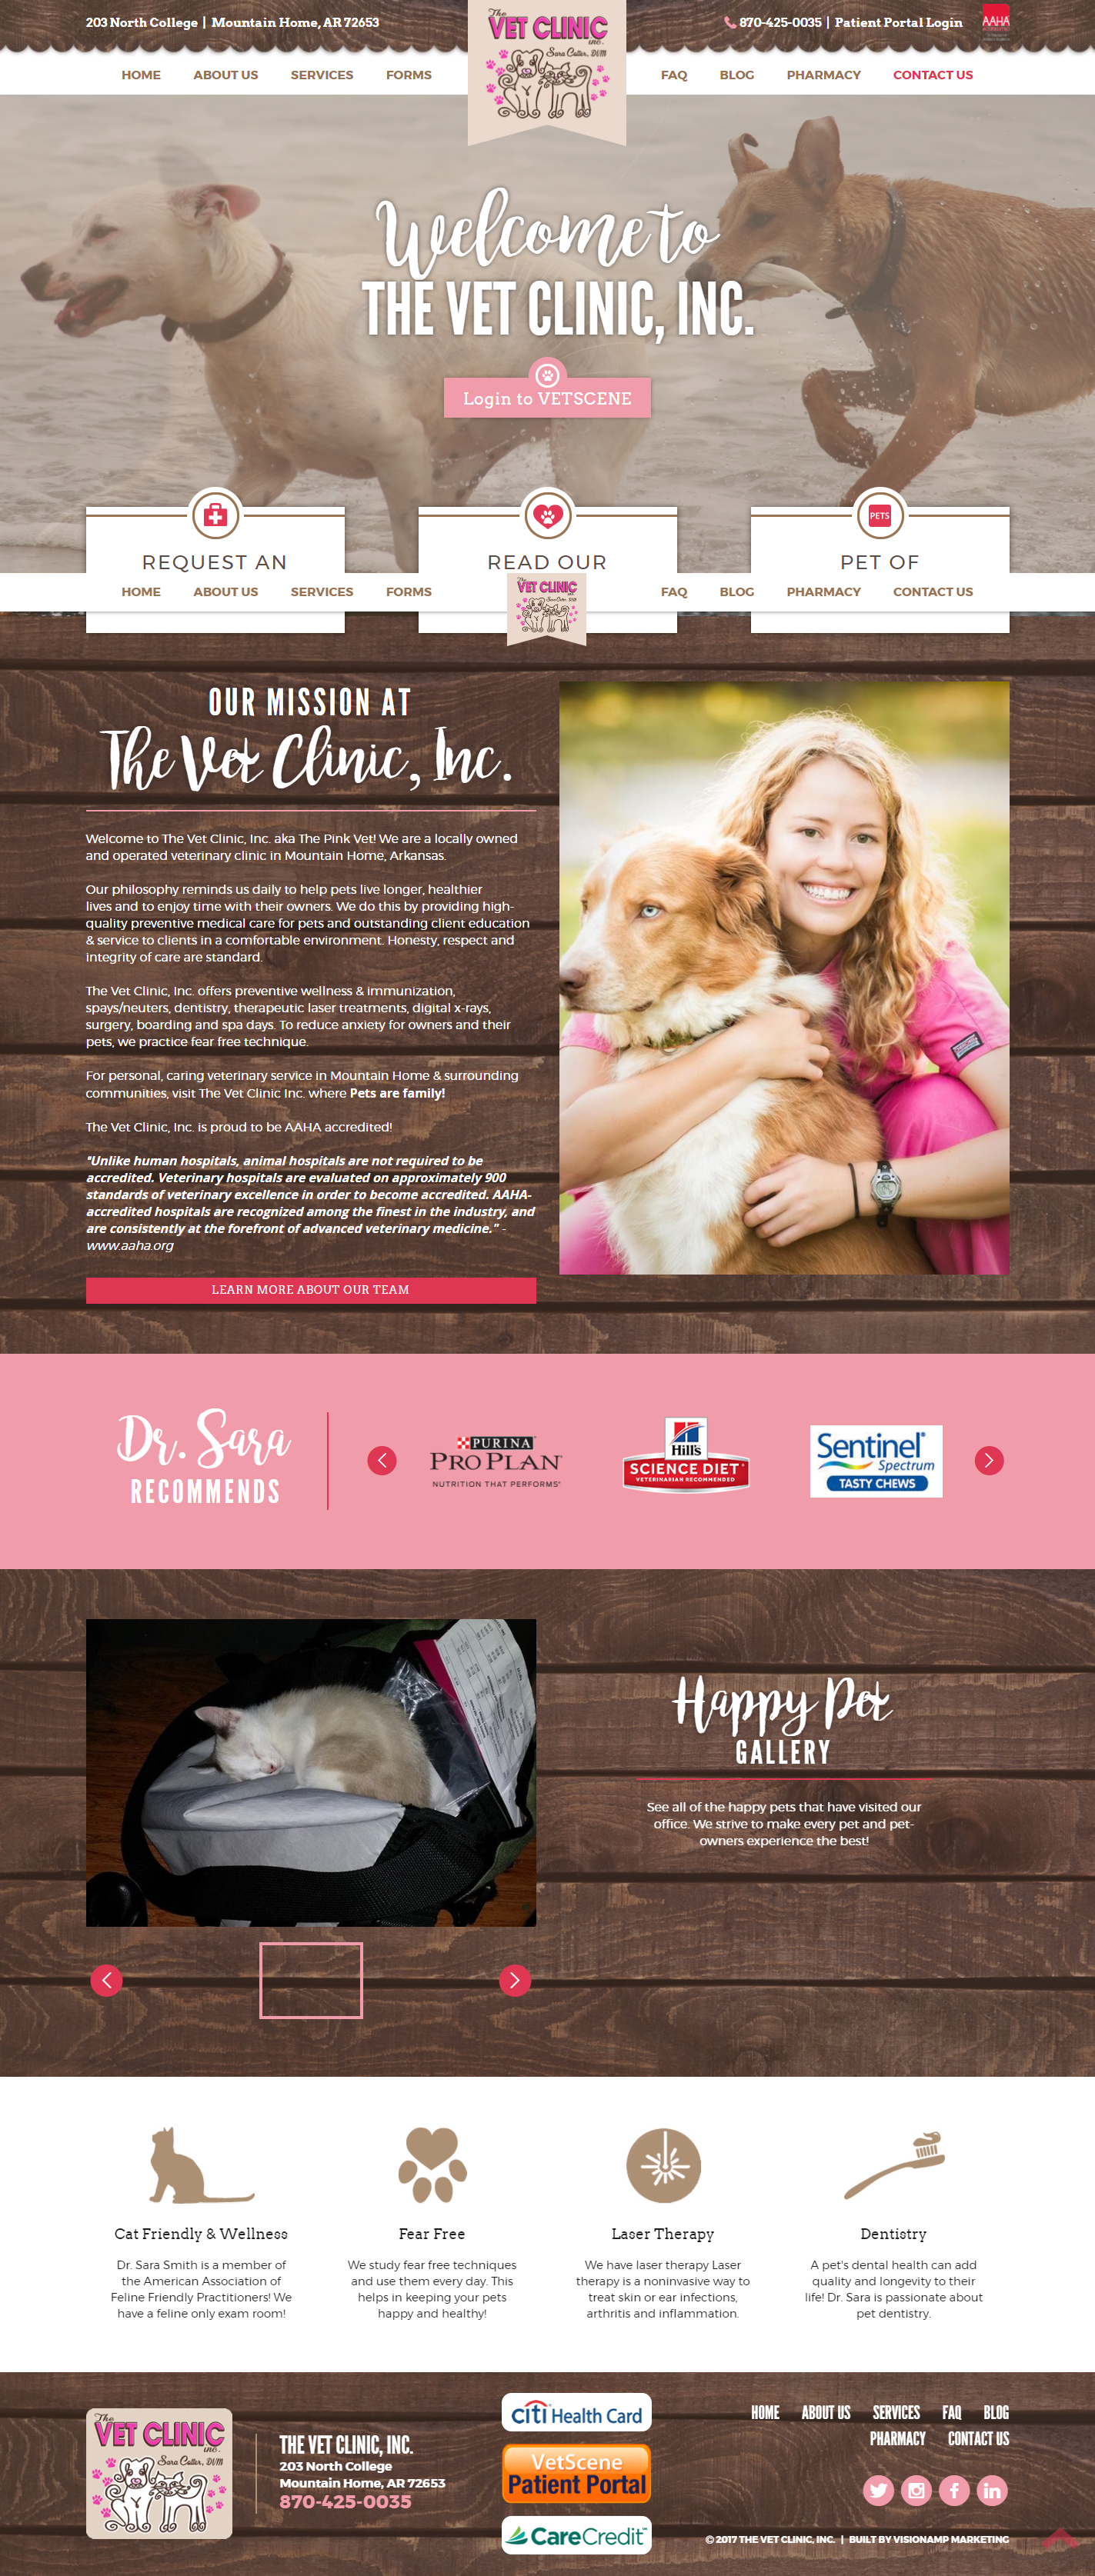 The Vet Clinic Inc Full Web Design Image